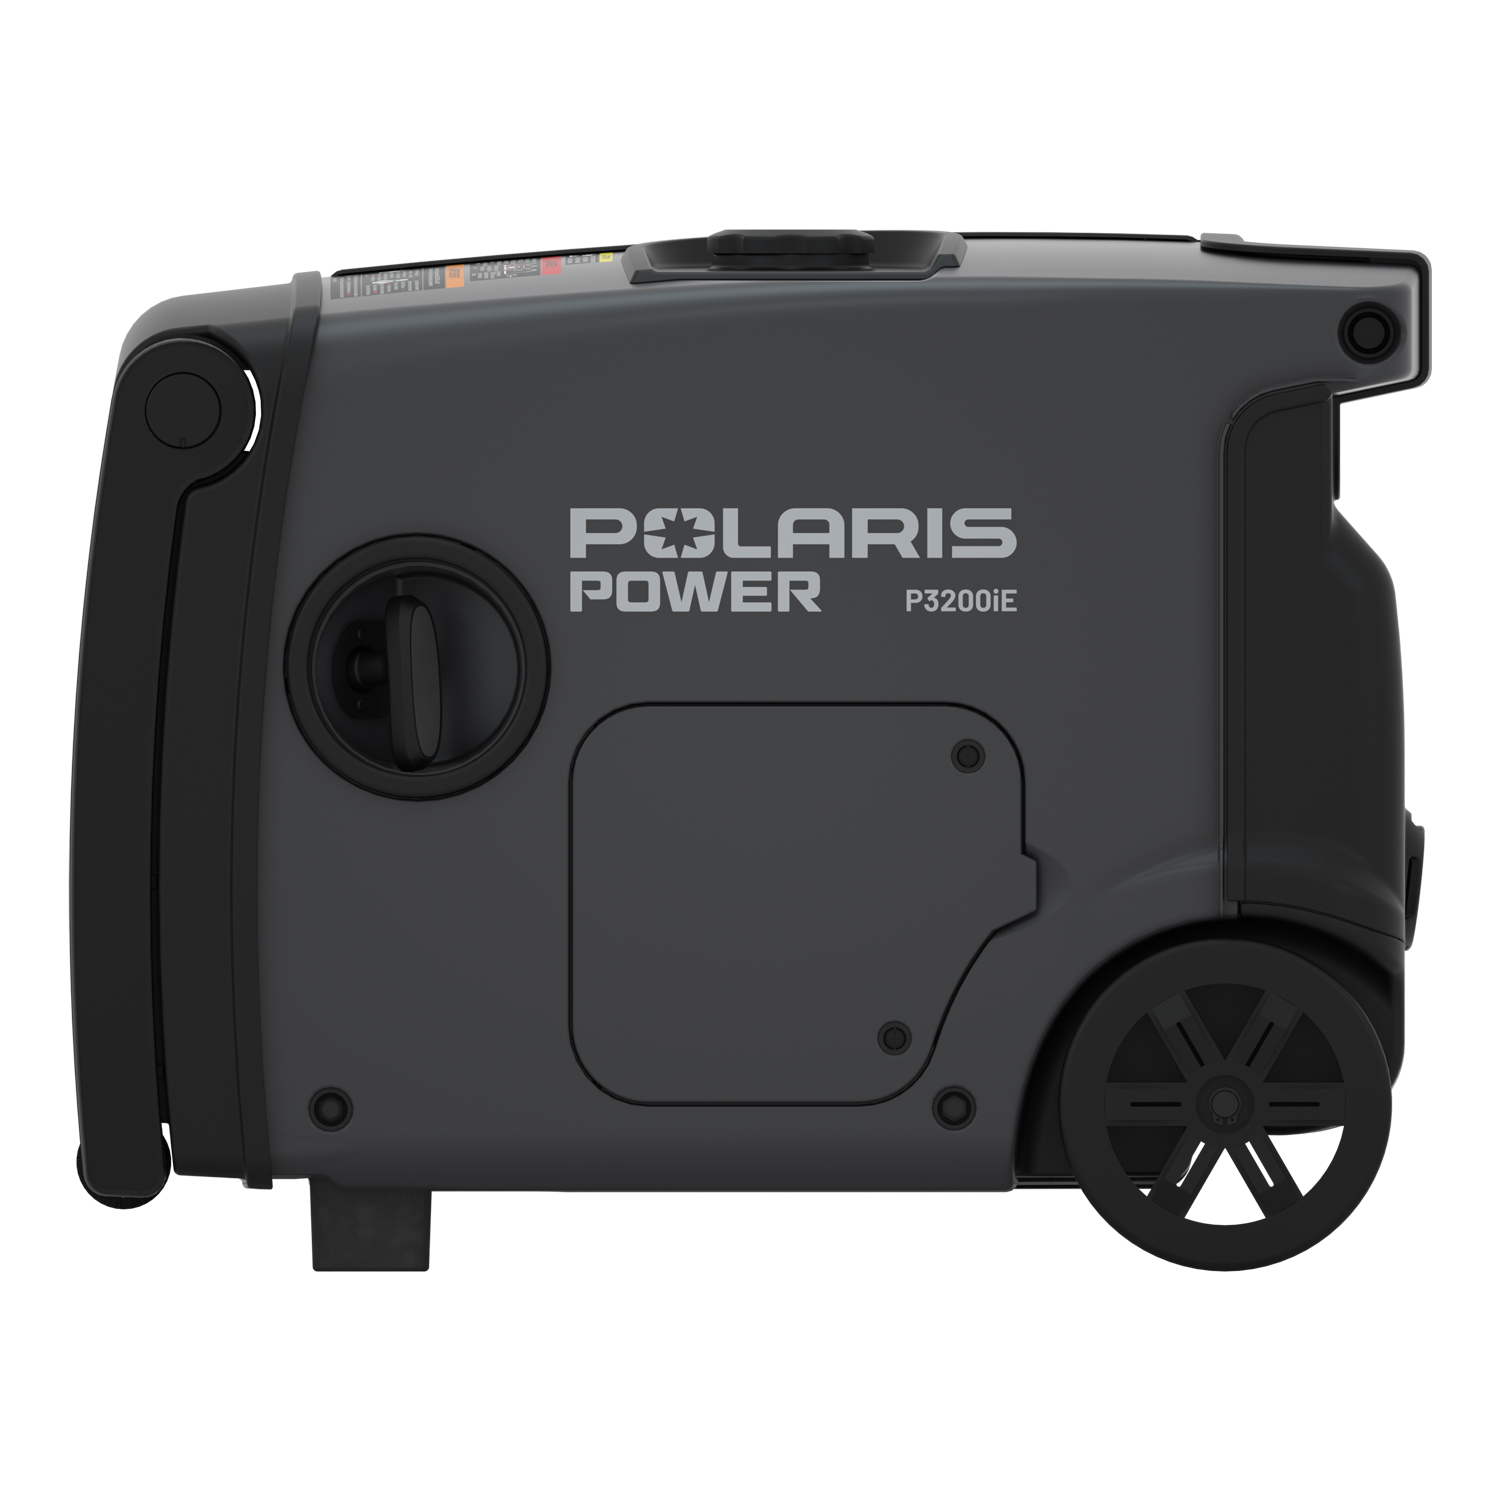 P3200iE Polaris Power Portable Inverter Generator